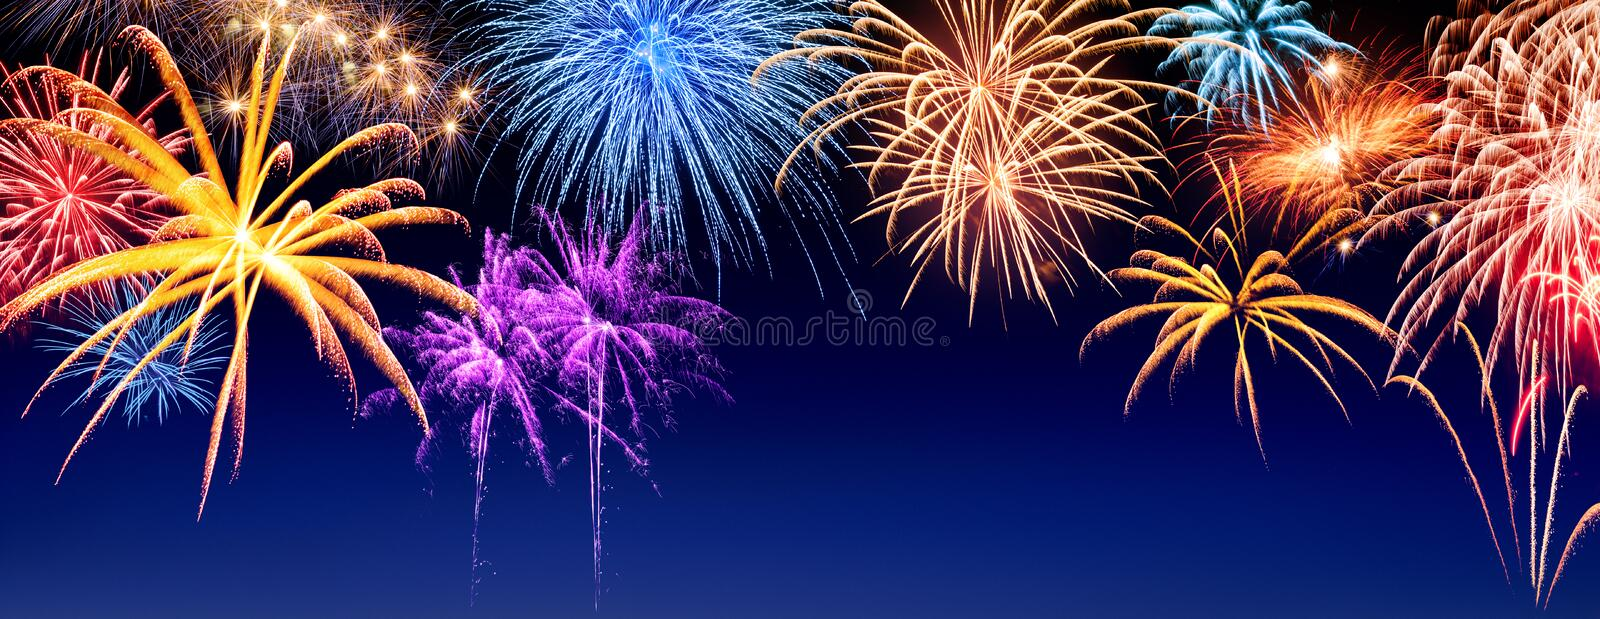 Fireworks display panorama stock images